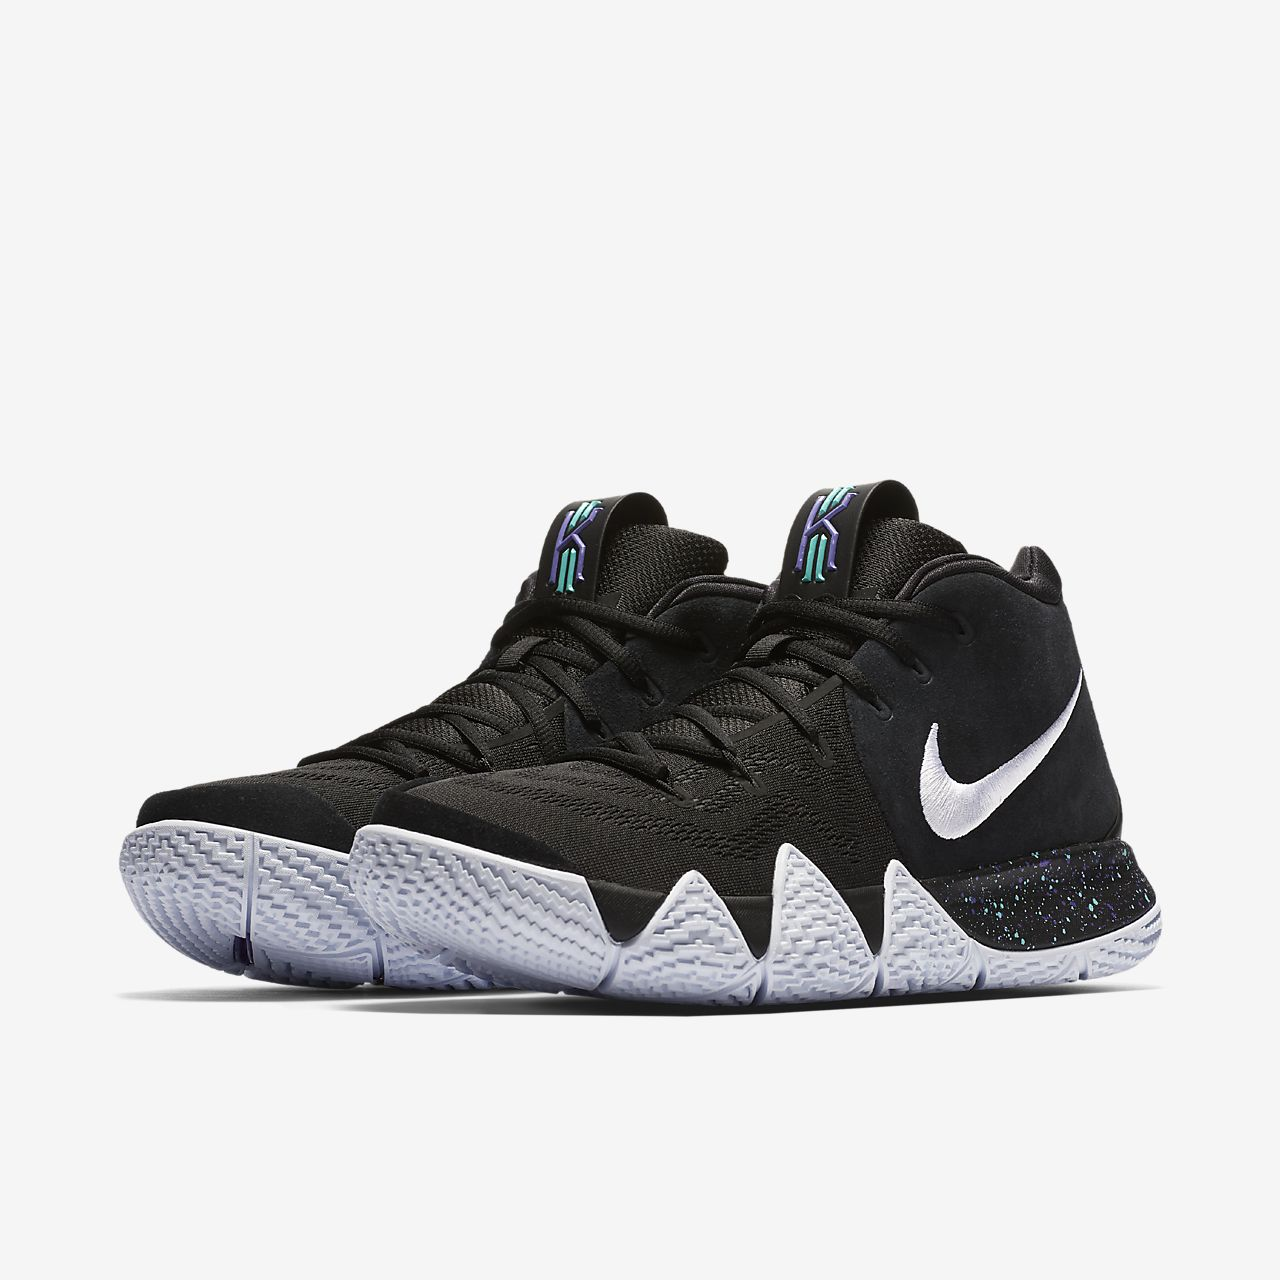 kyrie 4 shoes buy